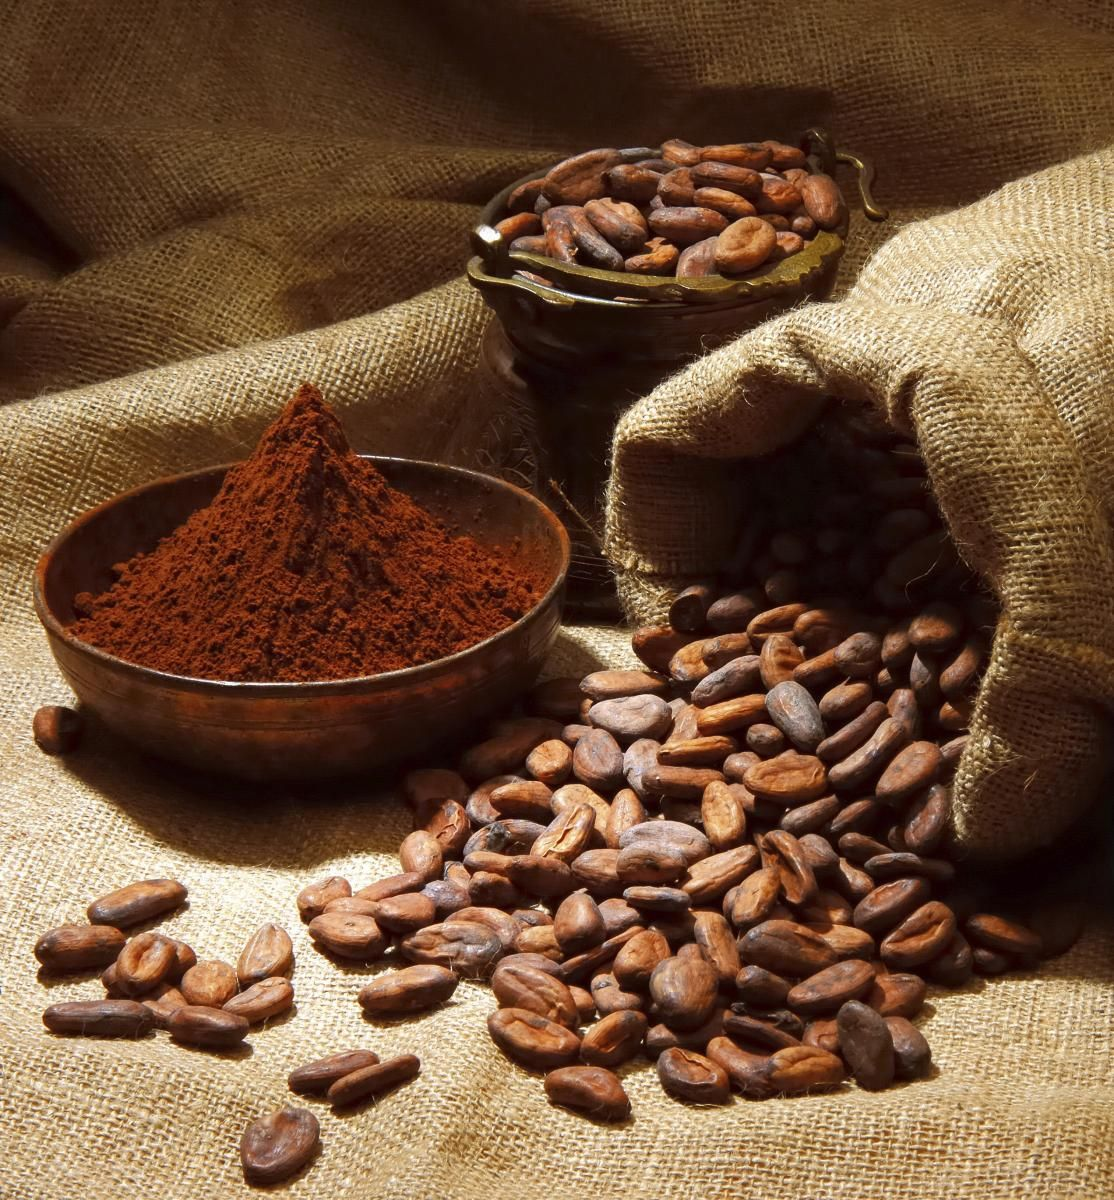 Benefits of #Cacao powder: magnesium & phosphorous! Plus it's great in a smoothie!